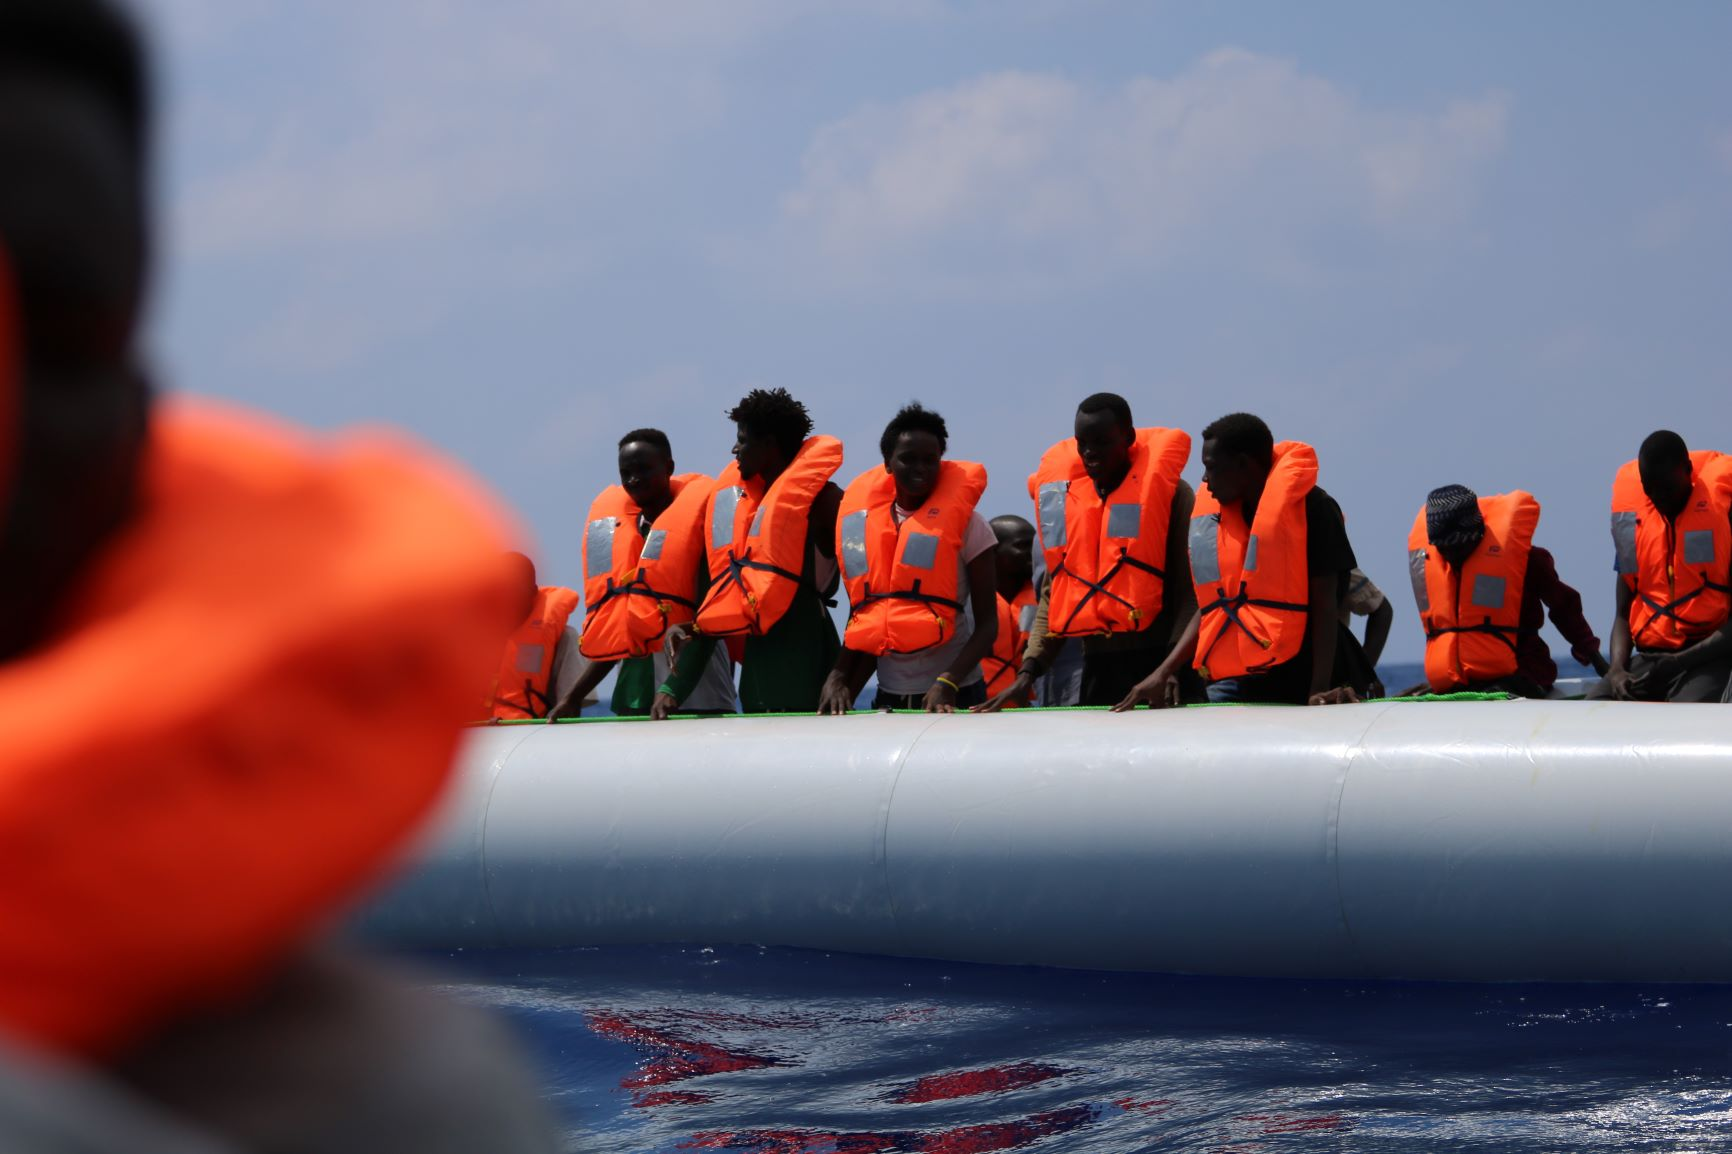 45 migrants stranded in Maltese waters; aid requested - Alarm Phone - Newsbook